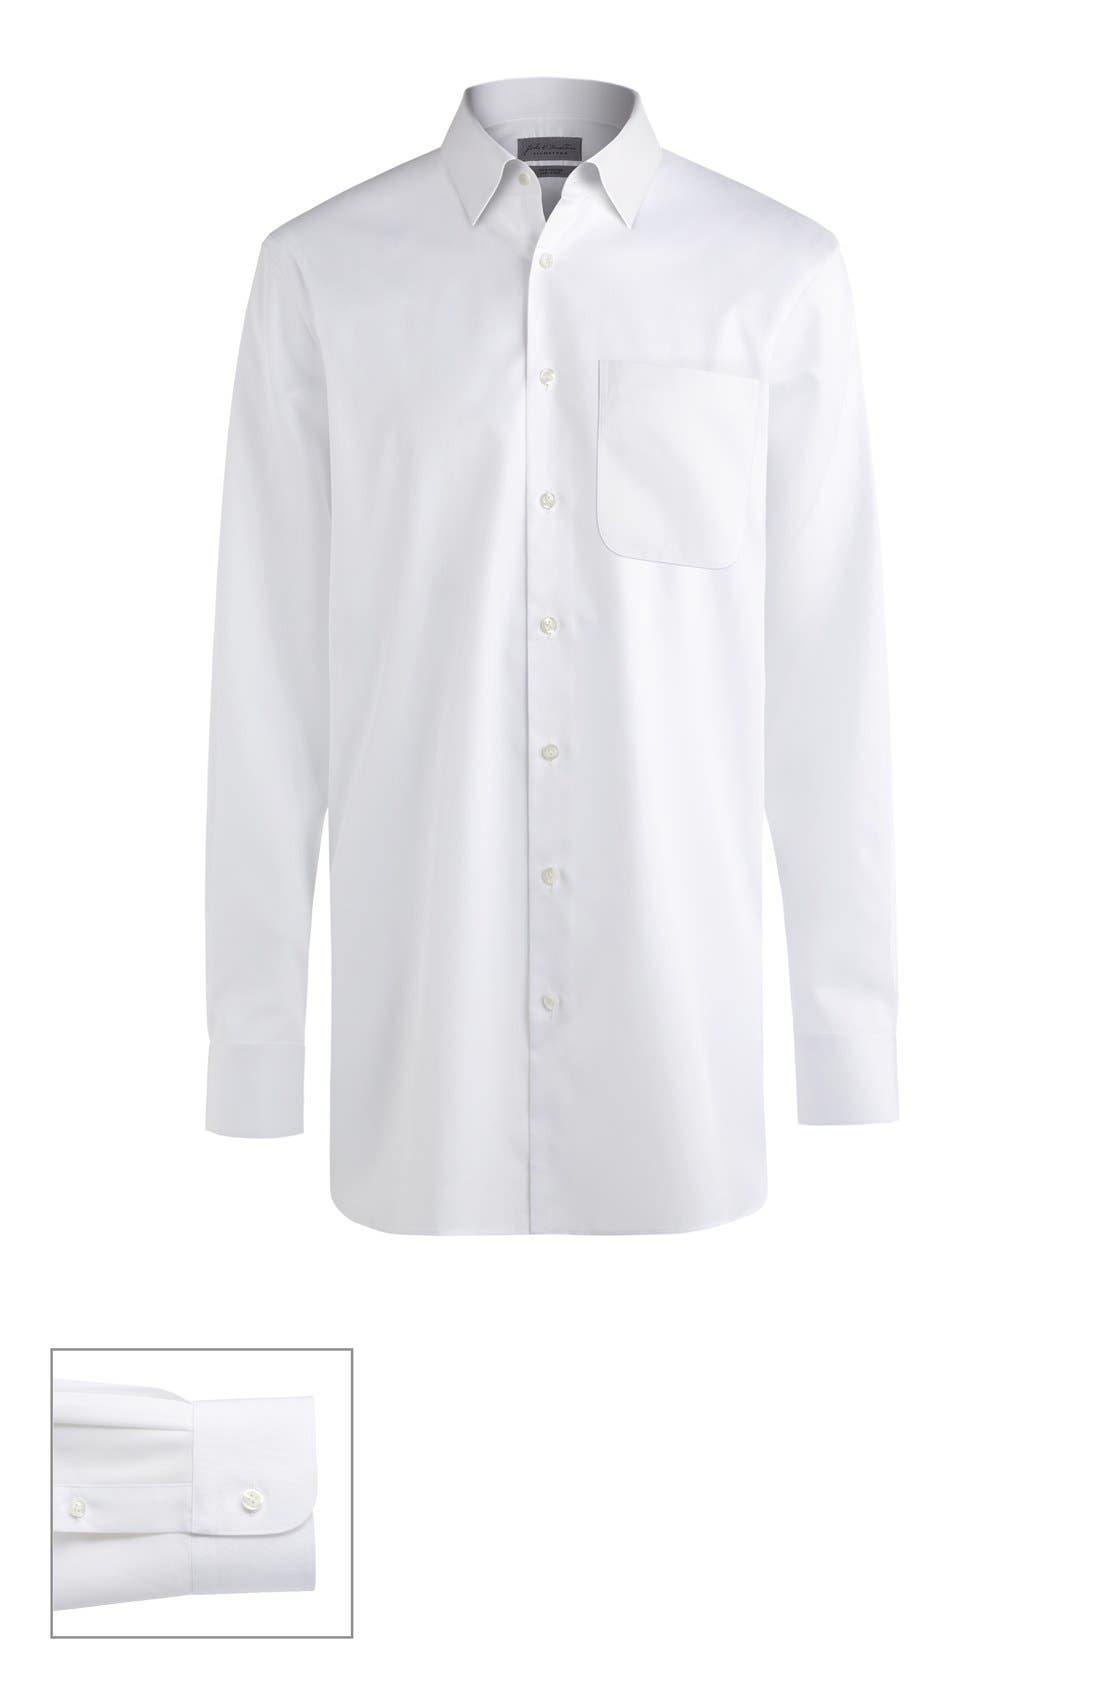 Made to Measure Extra Trim Fit Straight Collar Solid Dress Shirt,                             Main thumbnail 1, color,                             White Fine Twill